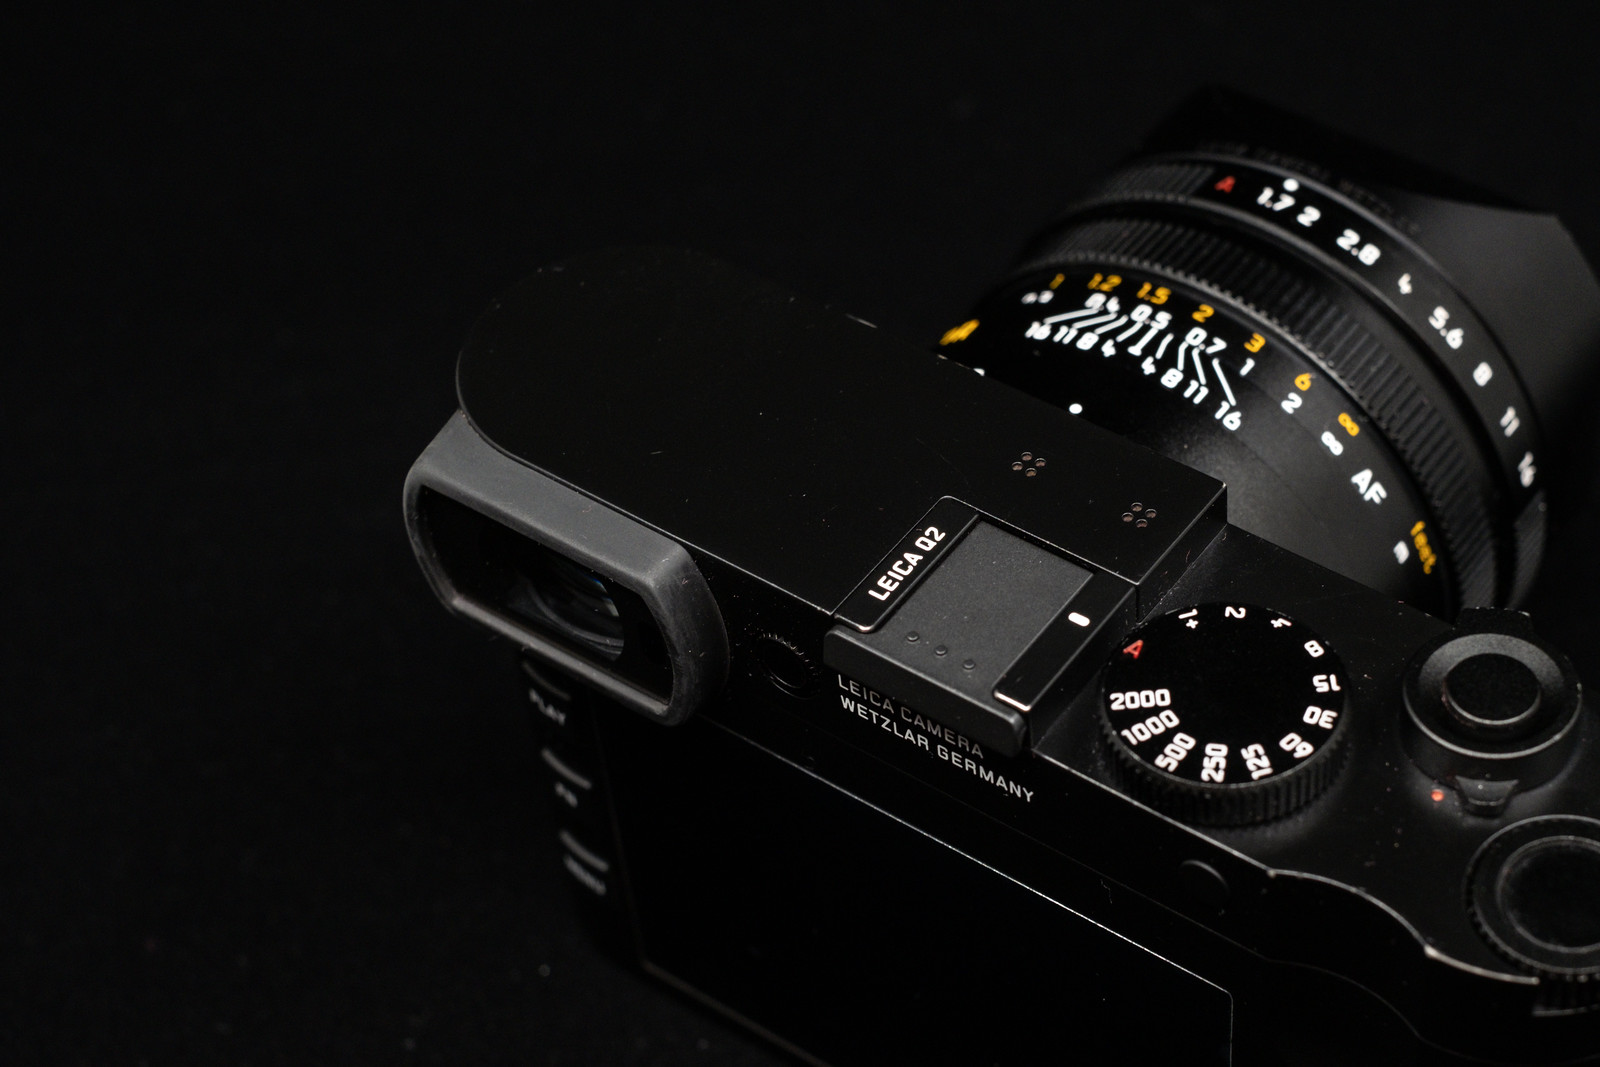 The Leica Q With Black Pro Mist Filters And Why It S Still Rocking In 2020 Keithwee